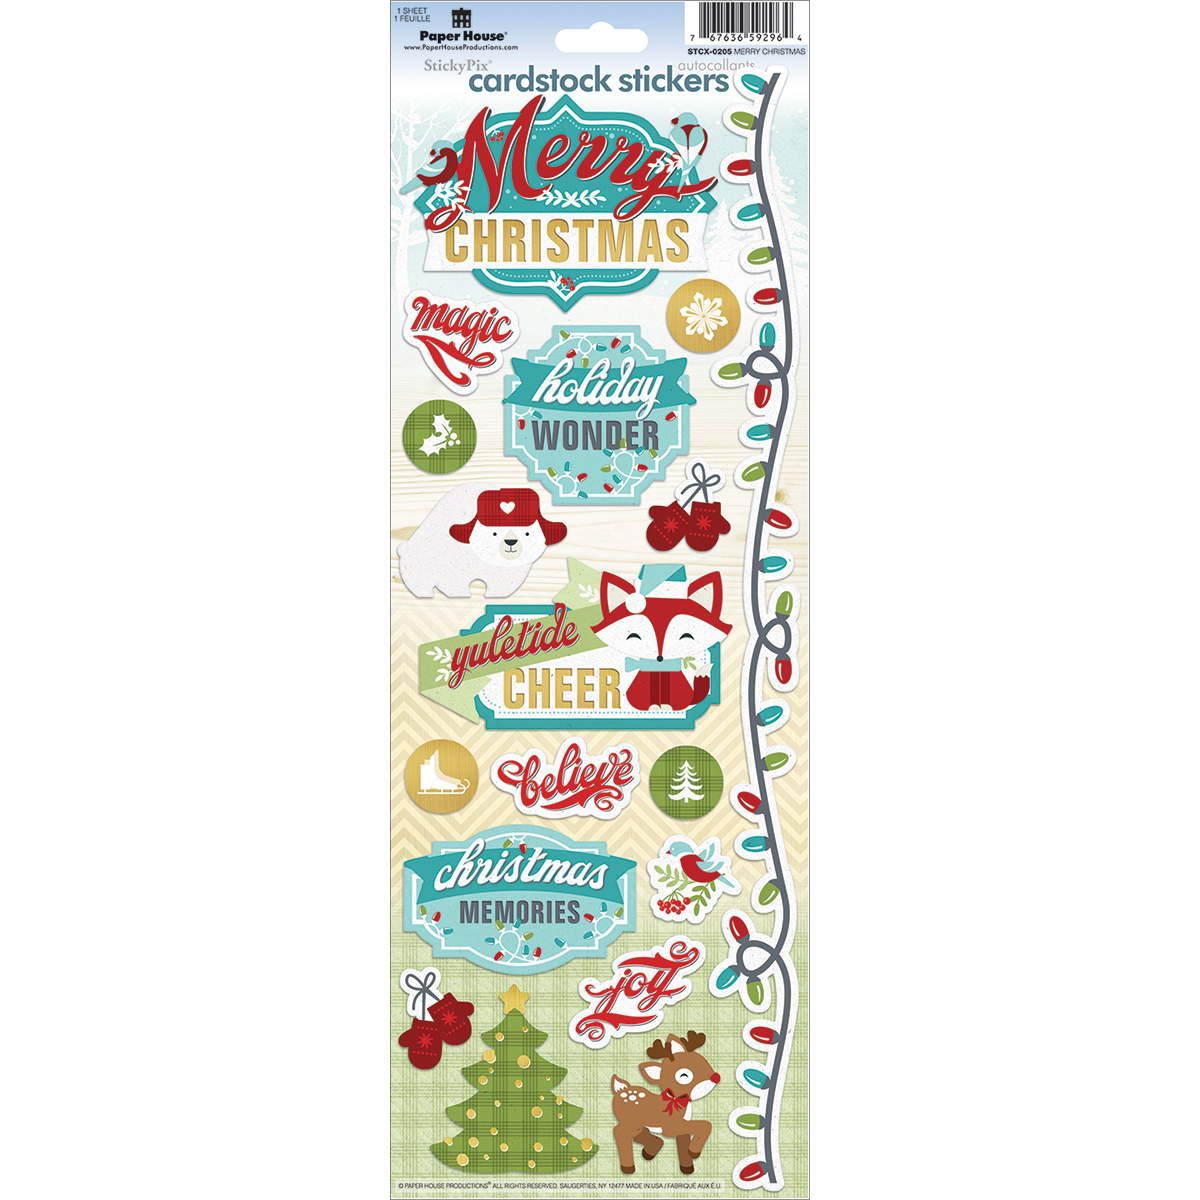 "Paper House Cardstock Stickers 4.625""X13""-Merry Christmas"